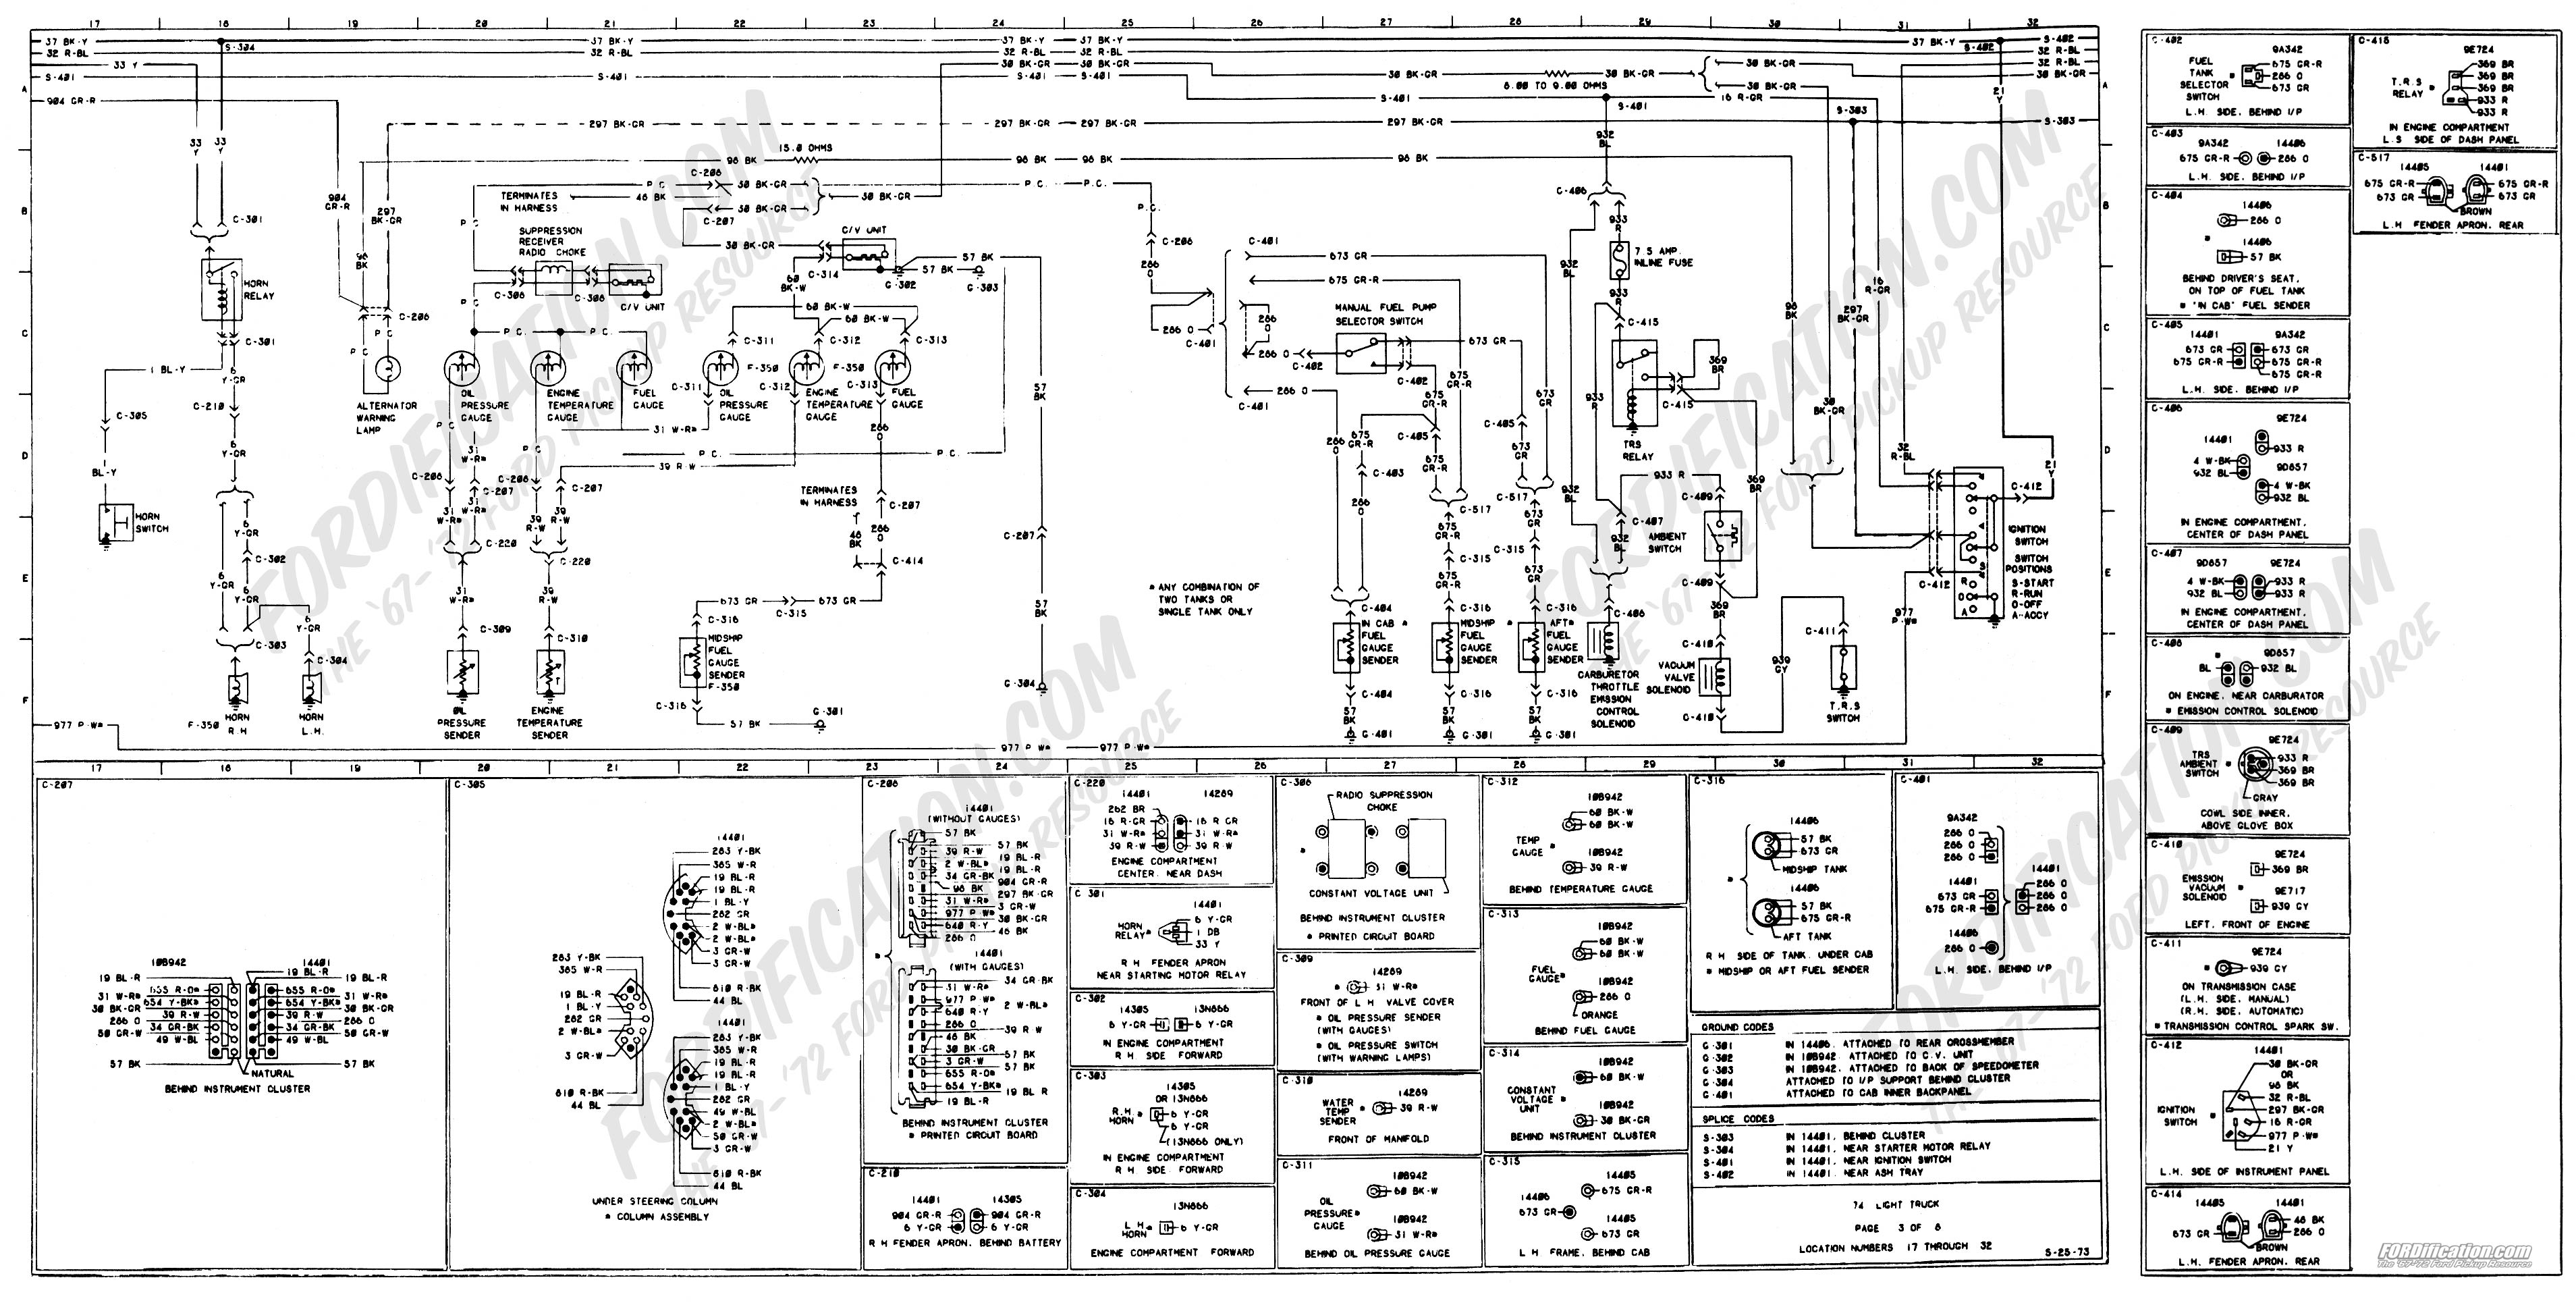 2002 F250 Ignition Wiring Diagram Libraries 2 9 Bronco Harness 1973 1979 Ford Truck Diagrams U0026 Schematics Fordification Net2002